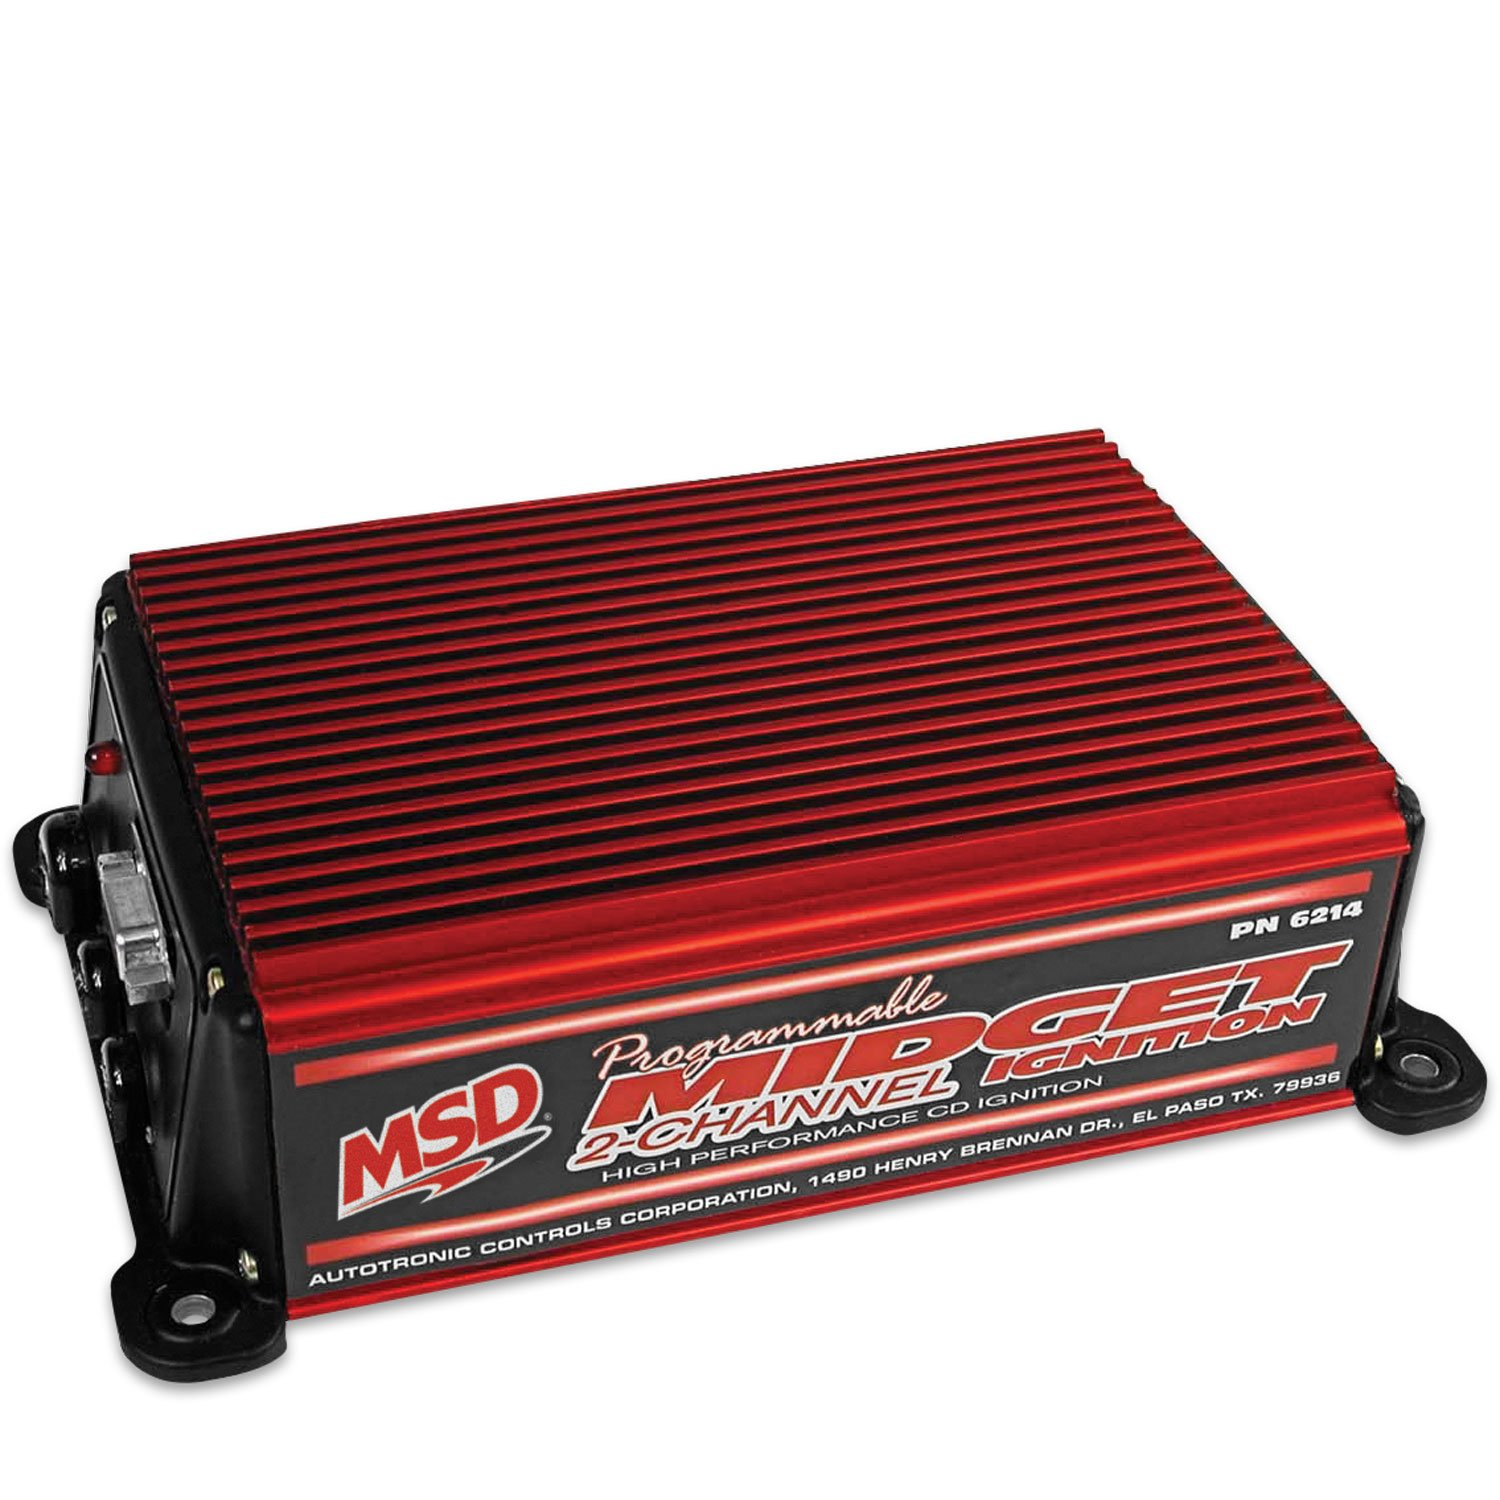 6214_v1 msd 6214 midget dis 2 programmable race ignition msd performance  at reclaimingppi.co